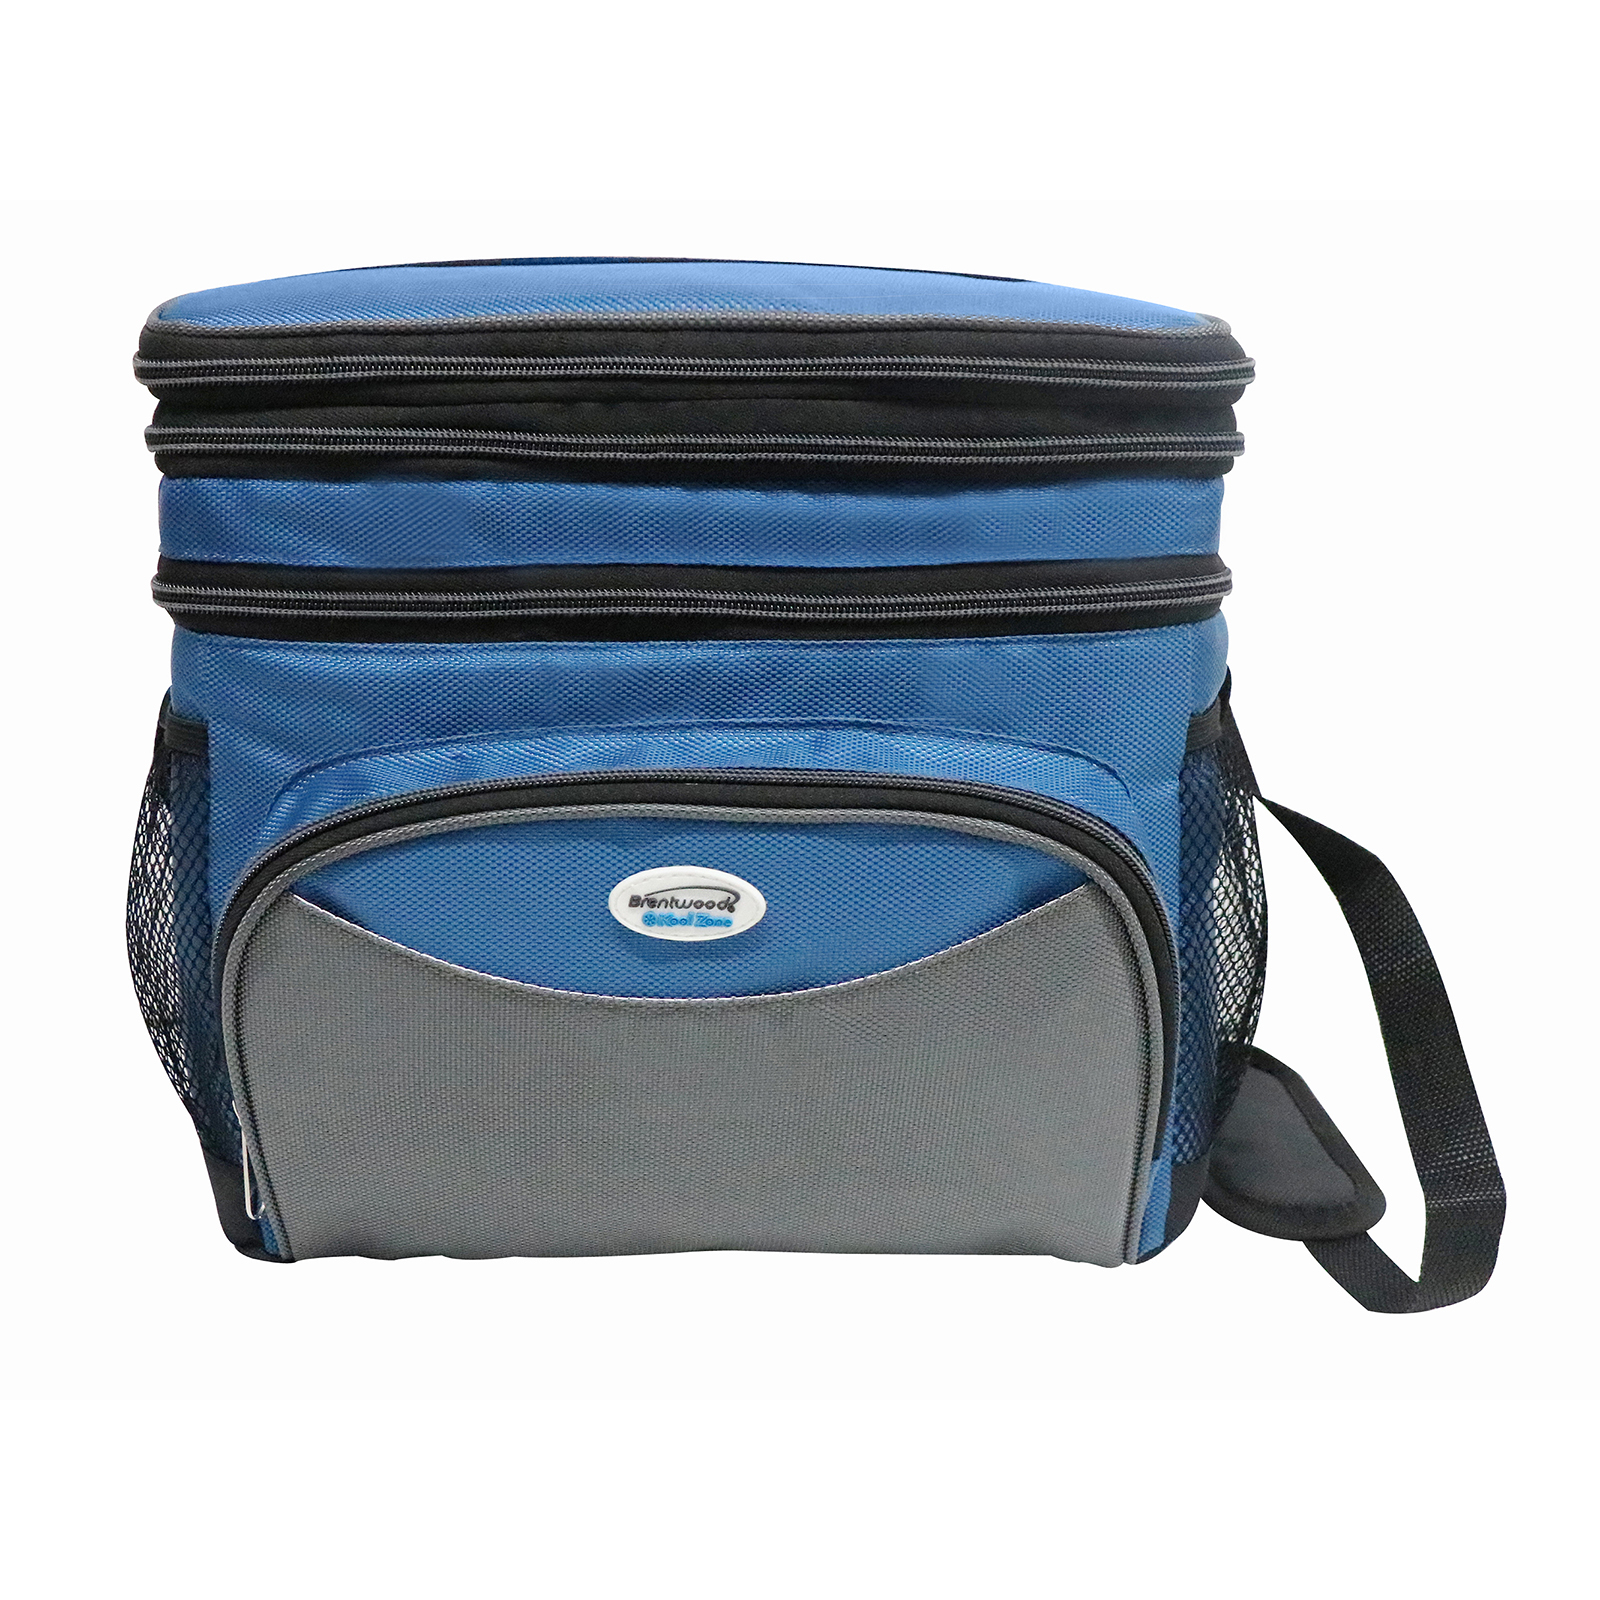 Image of Brentwood Cooler Bag 24 Can w/ Hard Plastic Ice Bucket-BLUE